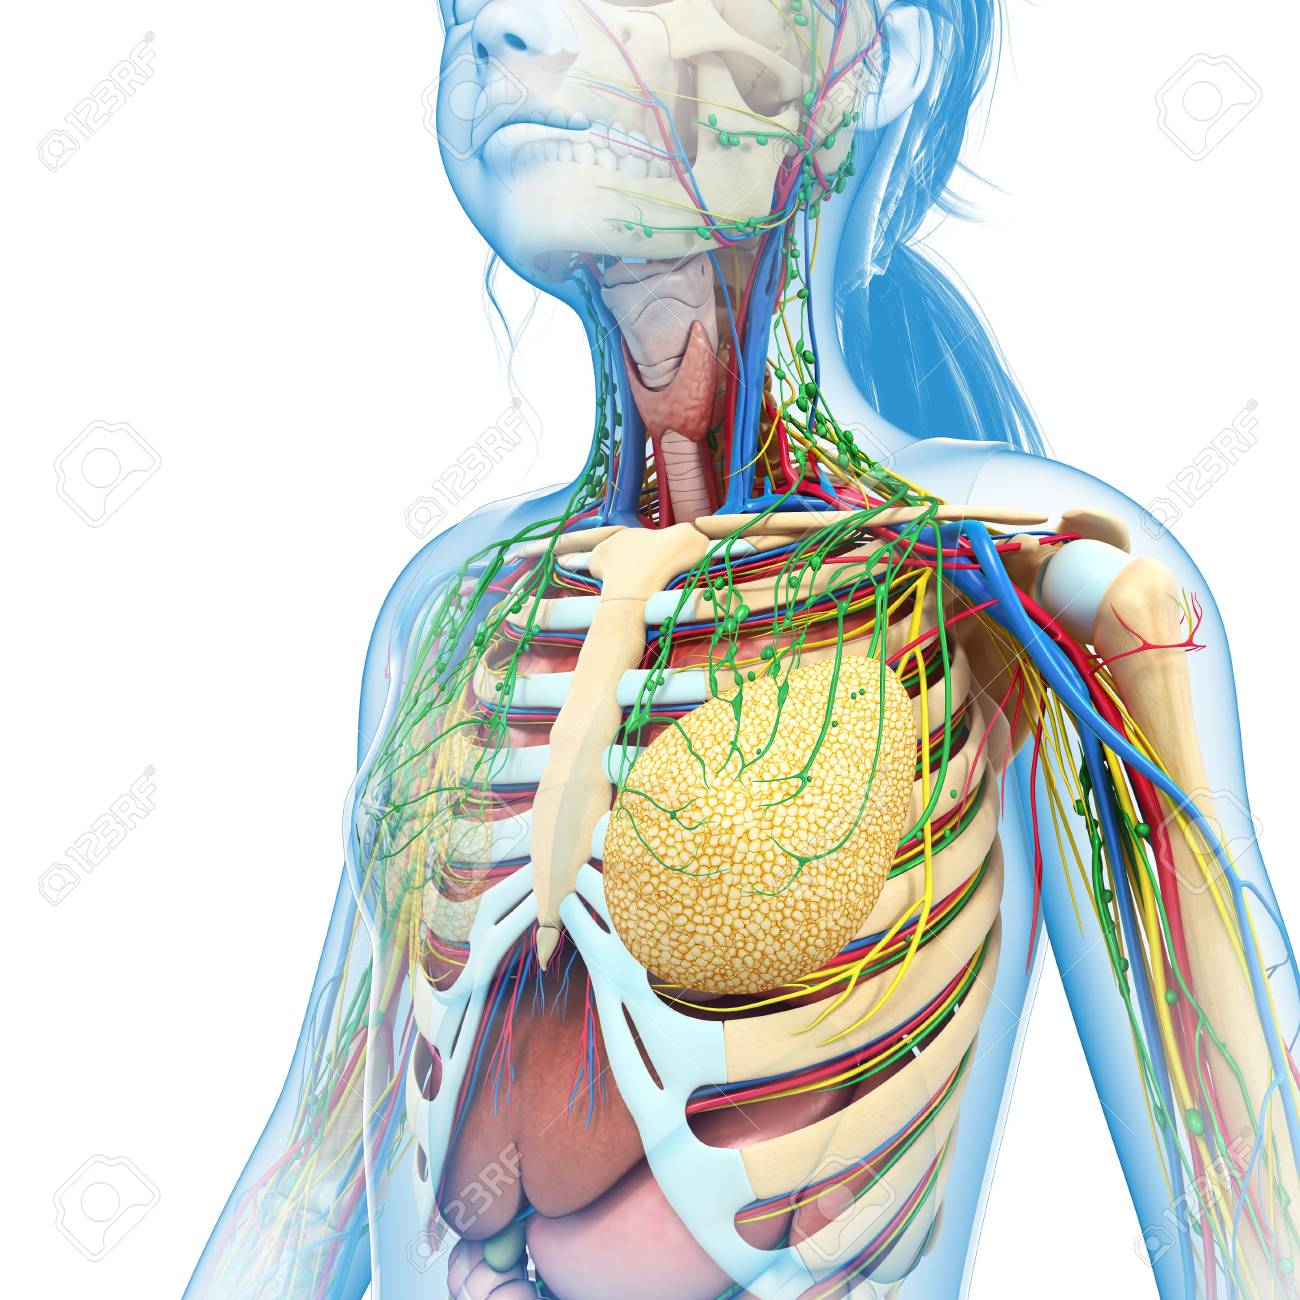 Teenage Girl Chest Anatomy, Illustration Stock Photo, Picture And ...